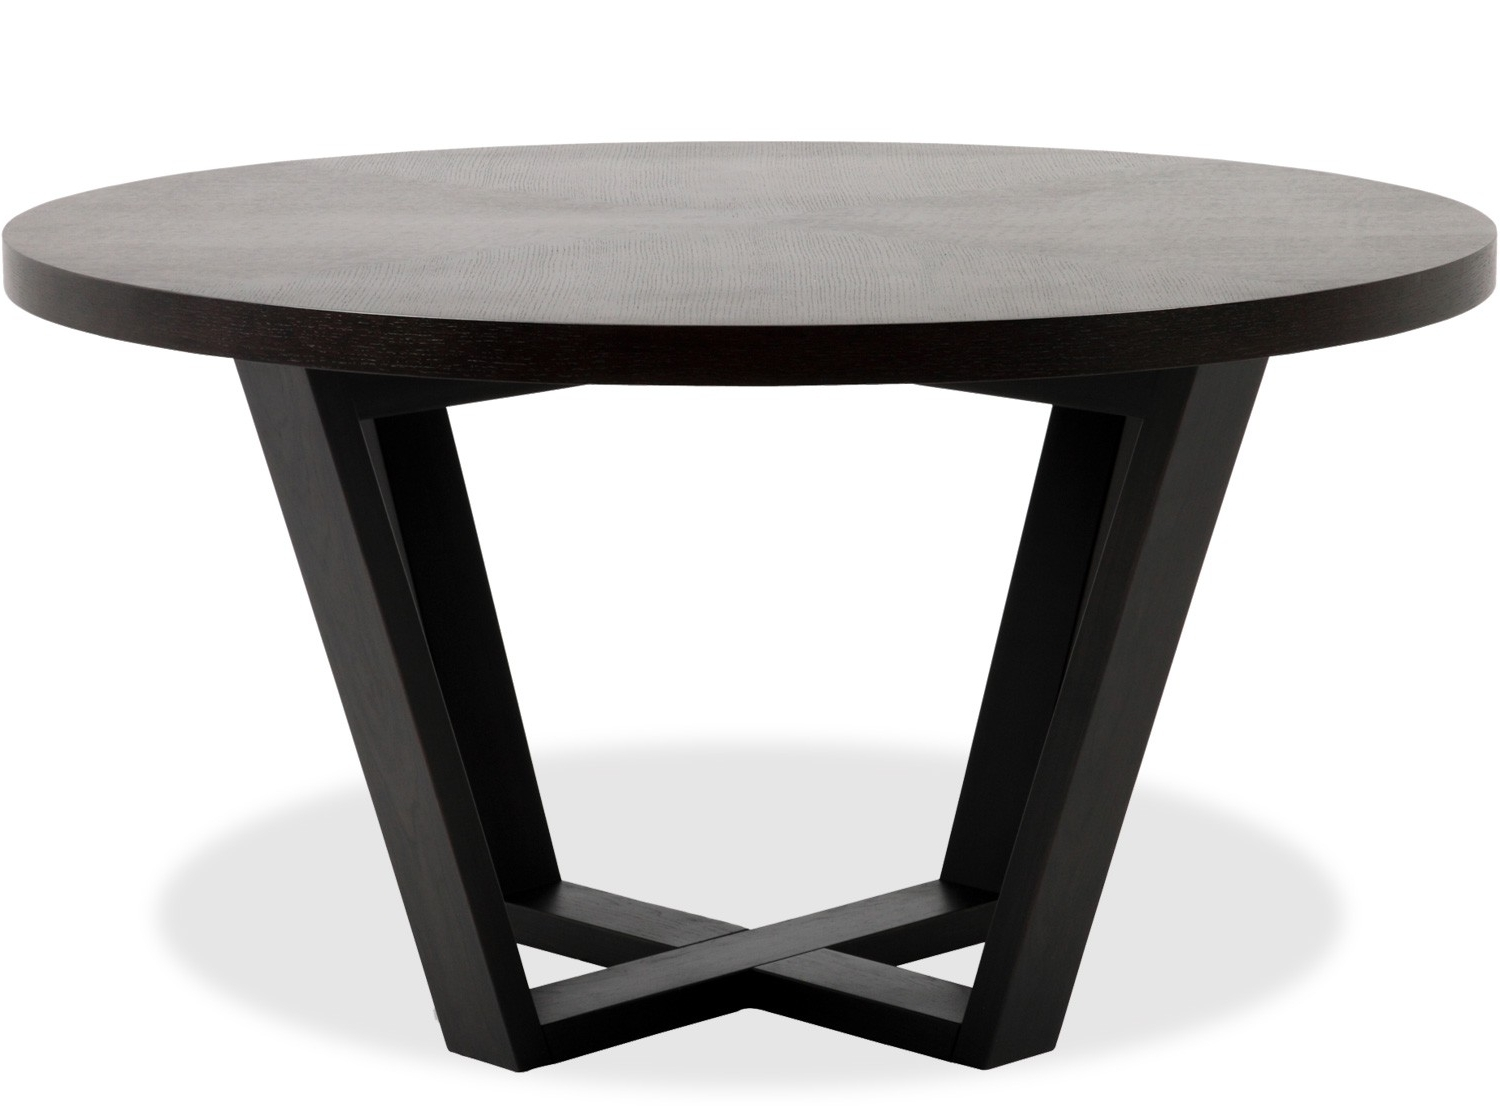 Dining Tables: Outstanding Round Black Dining Table Round Pedestal Inside 2018 Circular Dining Tables (View 20 of 25)